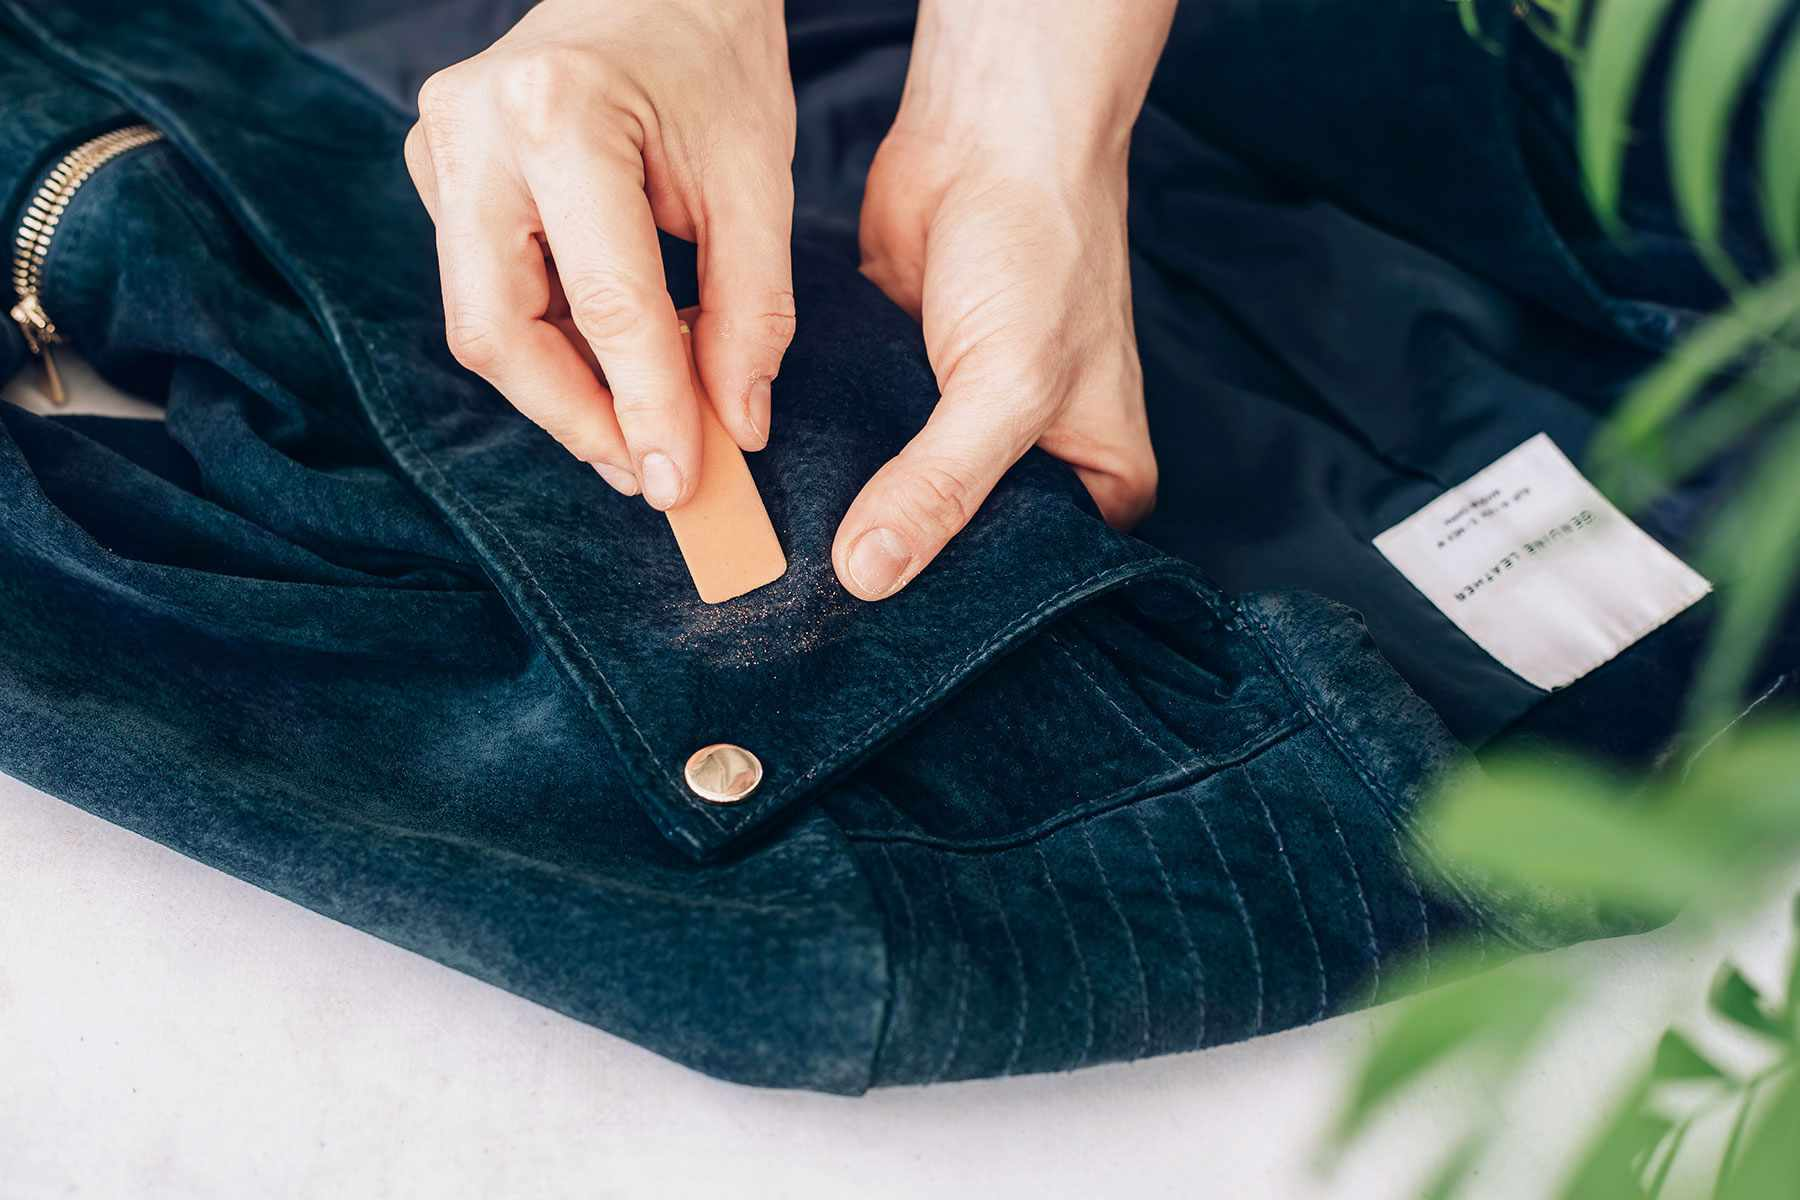 using an eraser on a suede stain